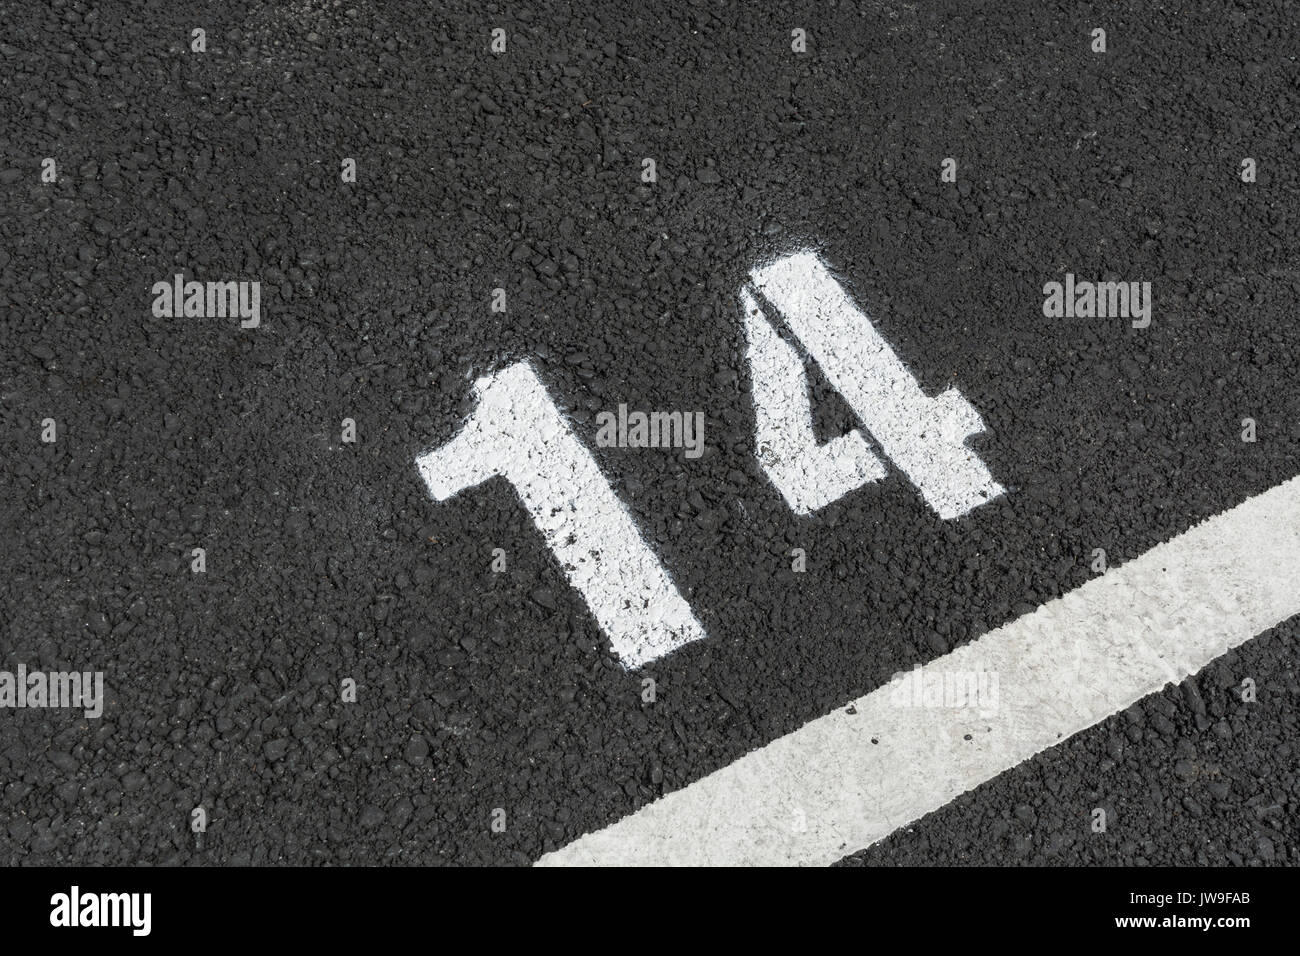 Painted number 14 on tarmac car park / parking lot space. Even number. - Stock Image